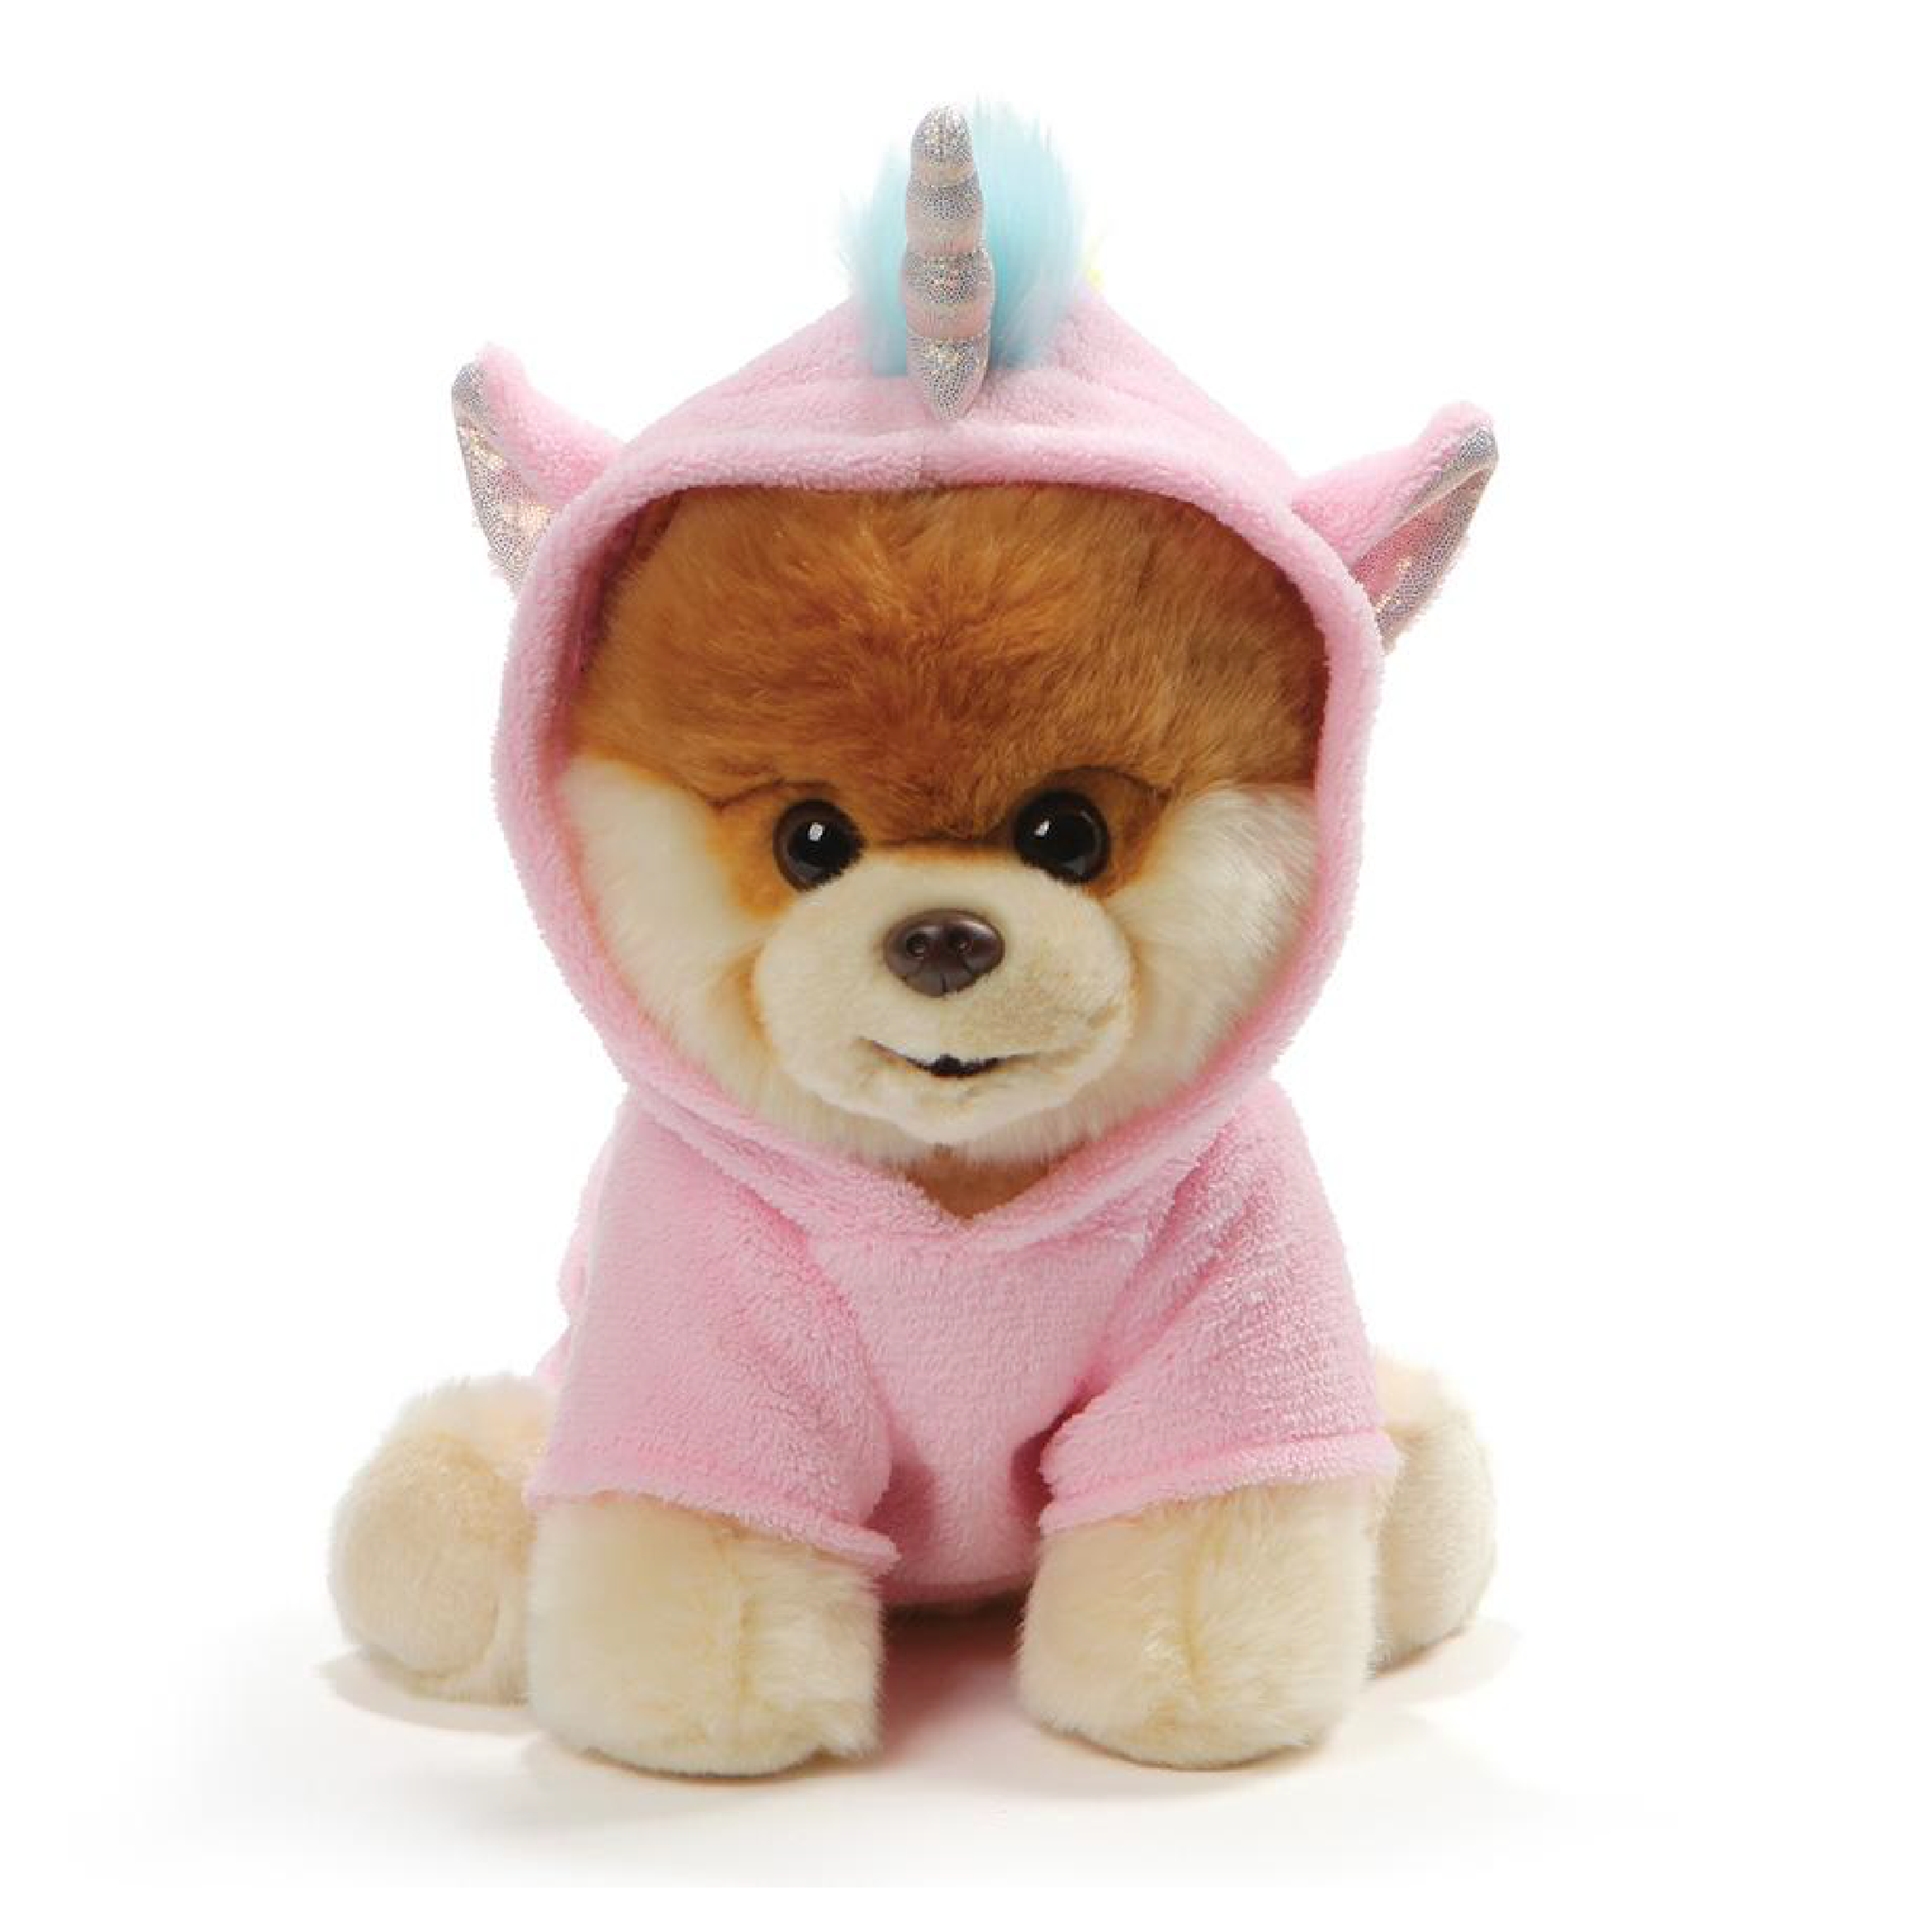 Gund Boo Unicorn Plush | Toy Galeria